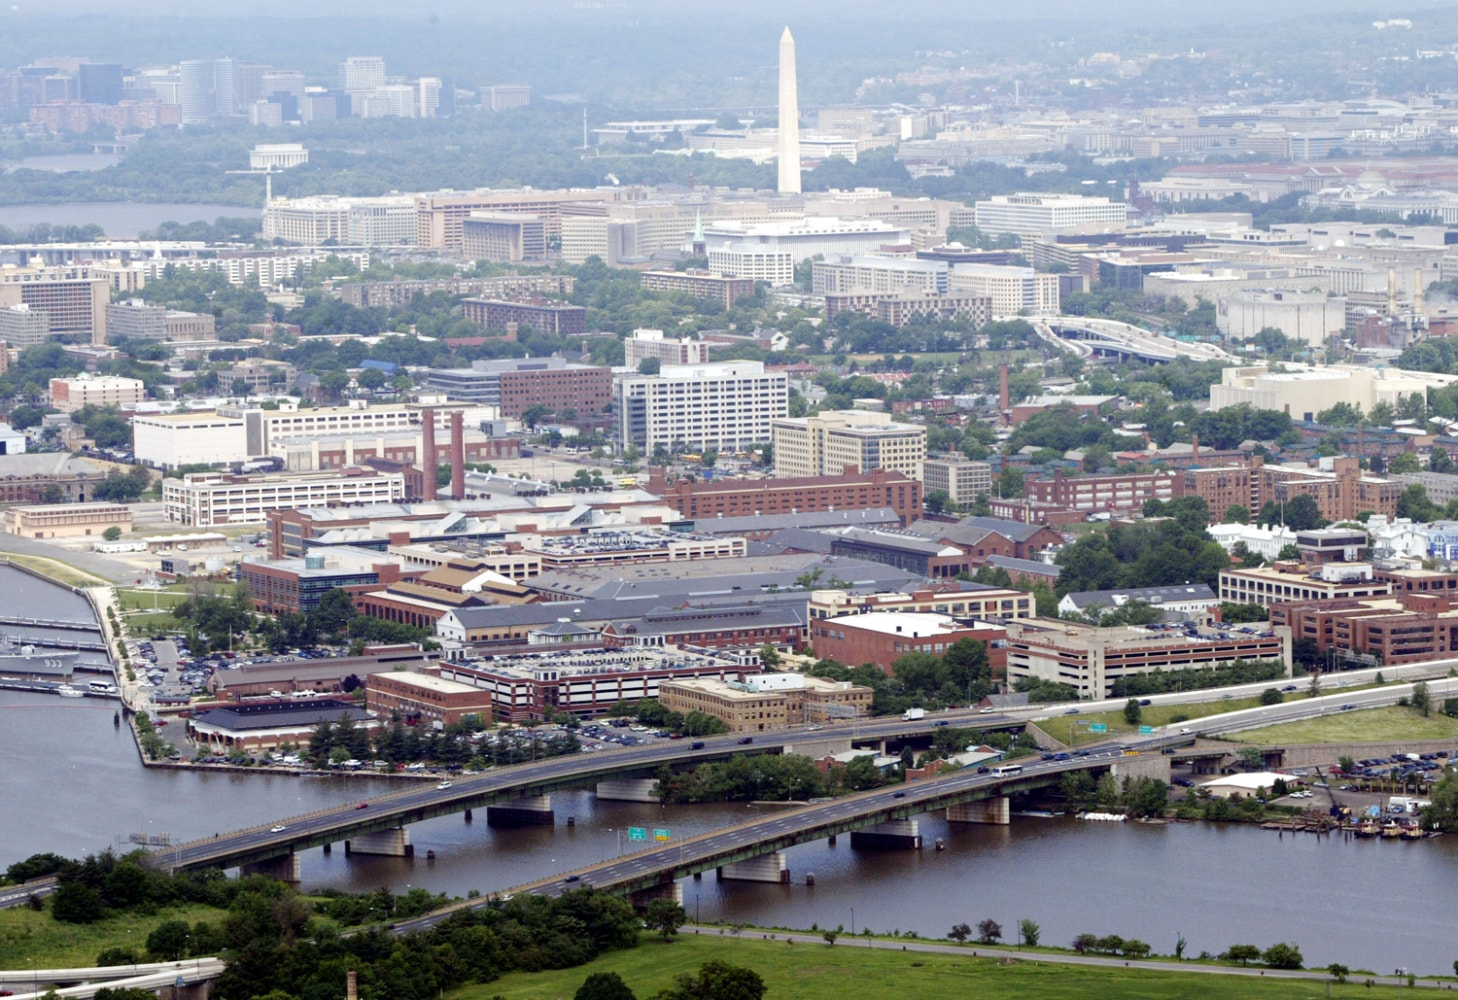 muslim single men in washington navy yard Shots were fired monday at a washington navy yard building, killing at least 12 people and injuring 14 others, according to local officials and the navy.